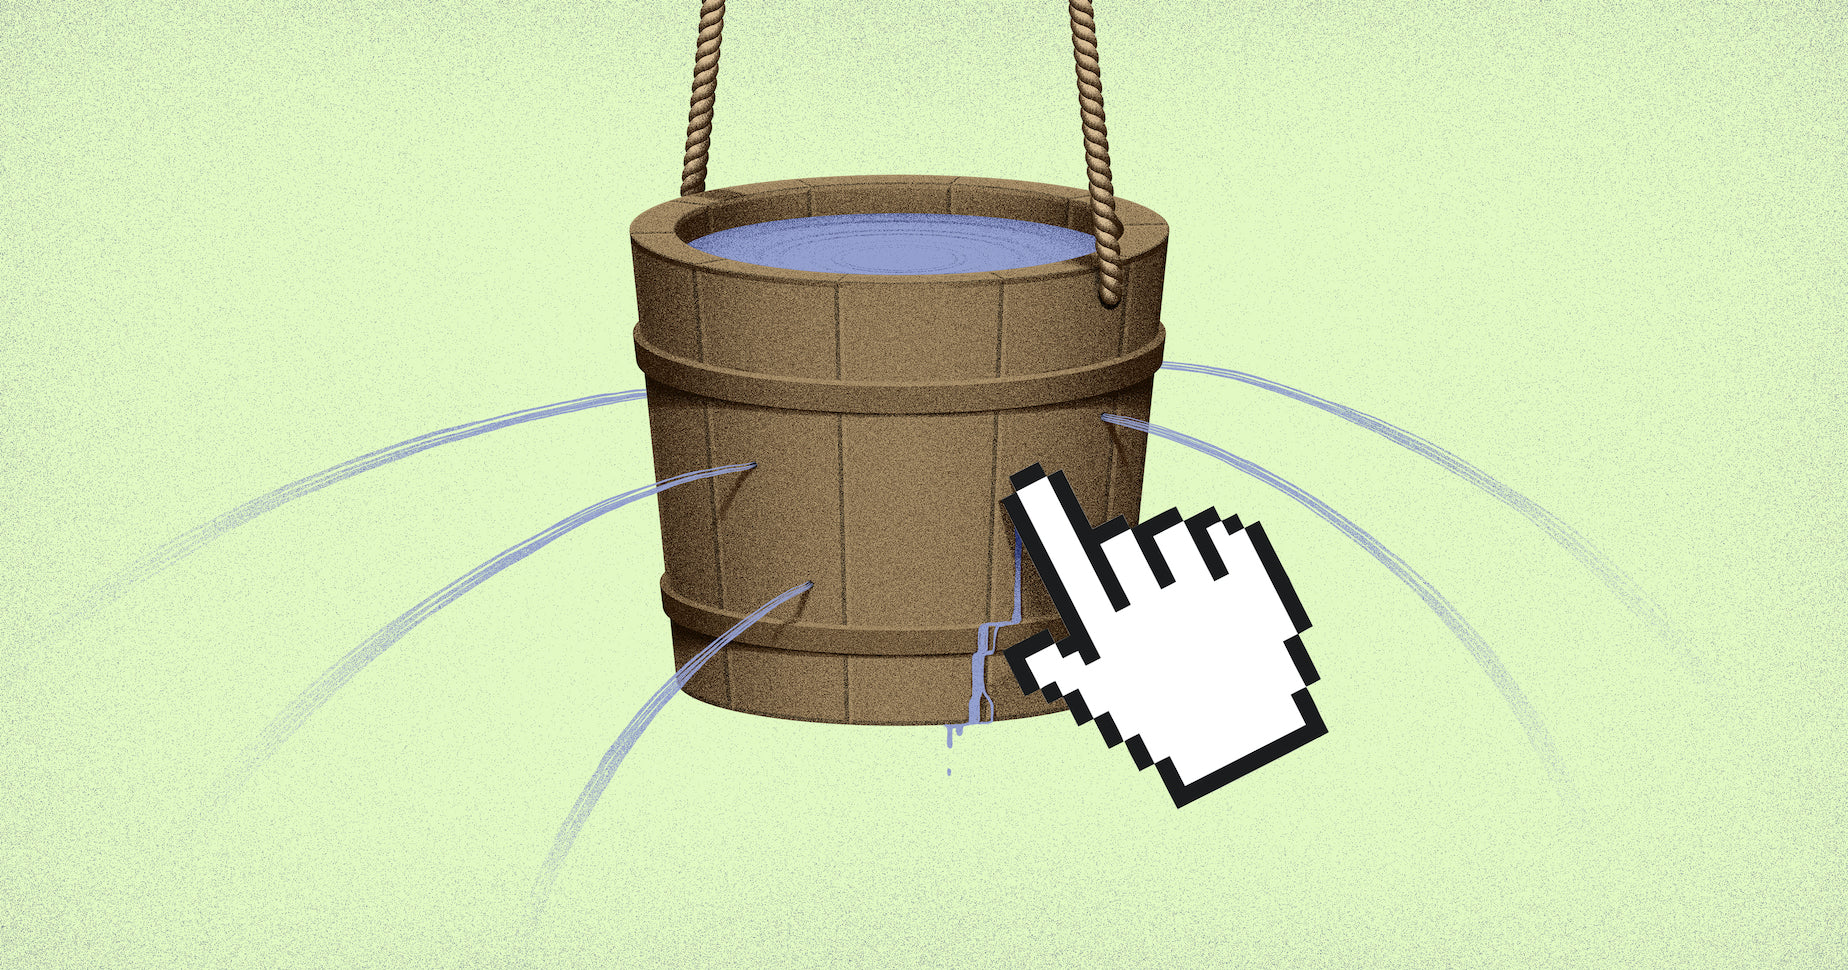 How to Find and Plug the Leaks in Your Conversion Funnels